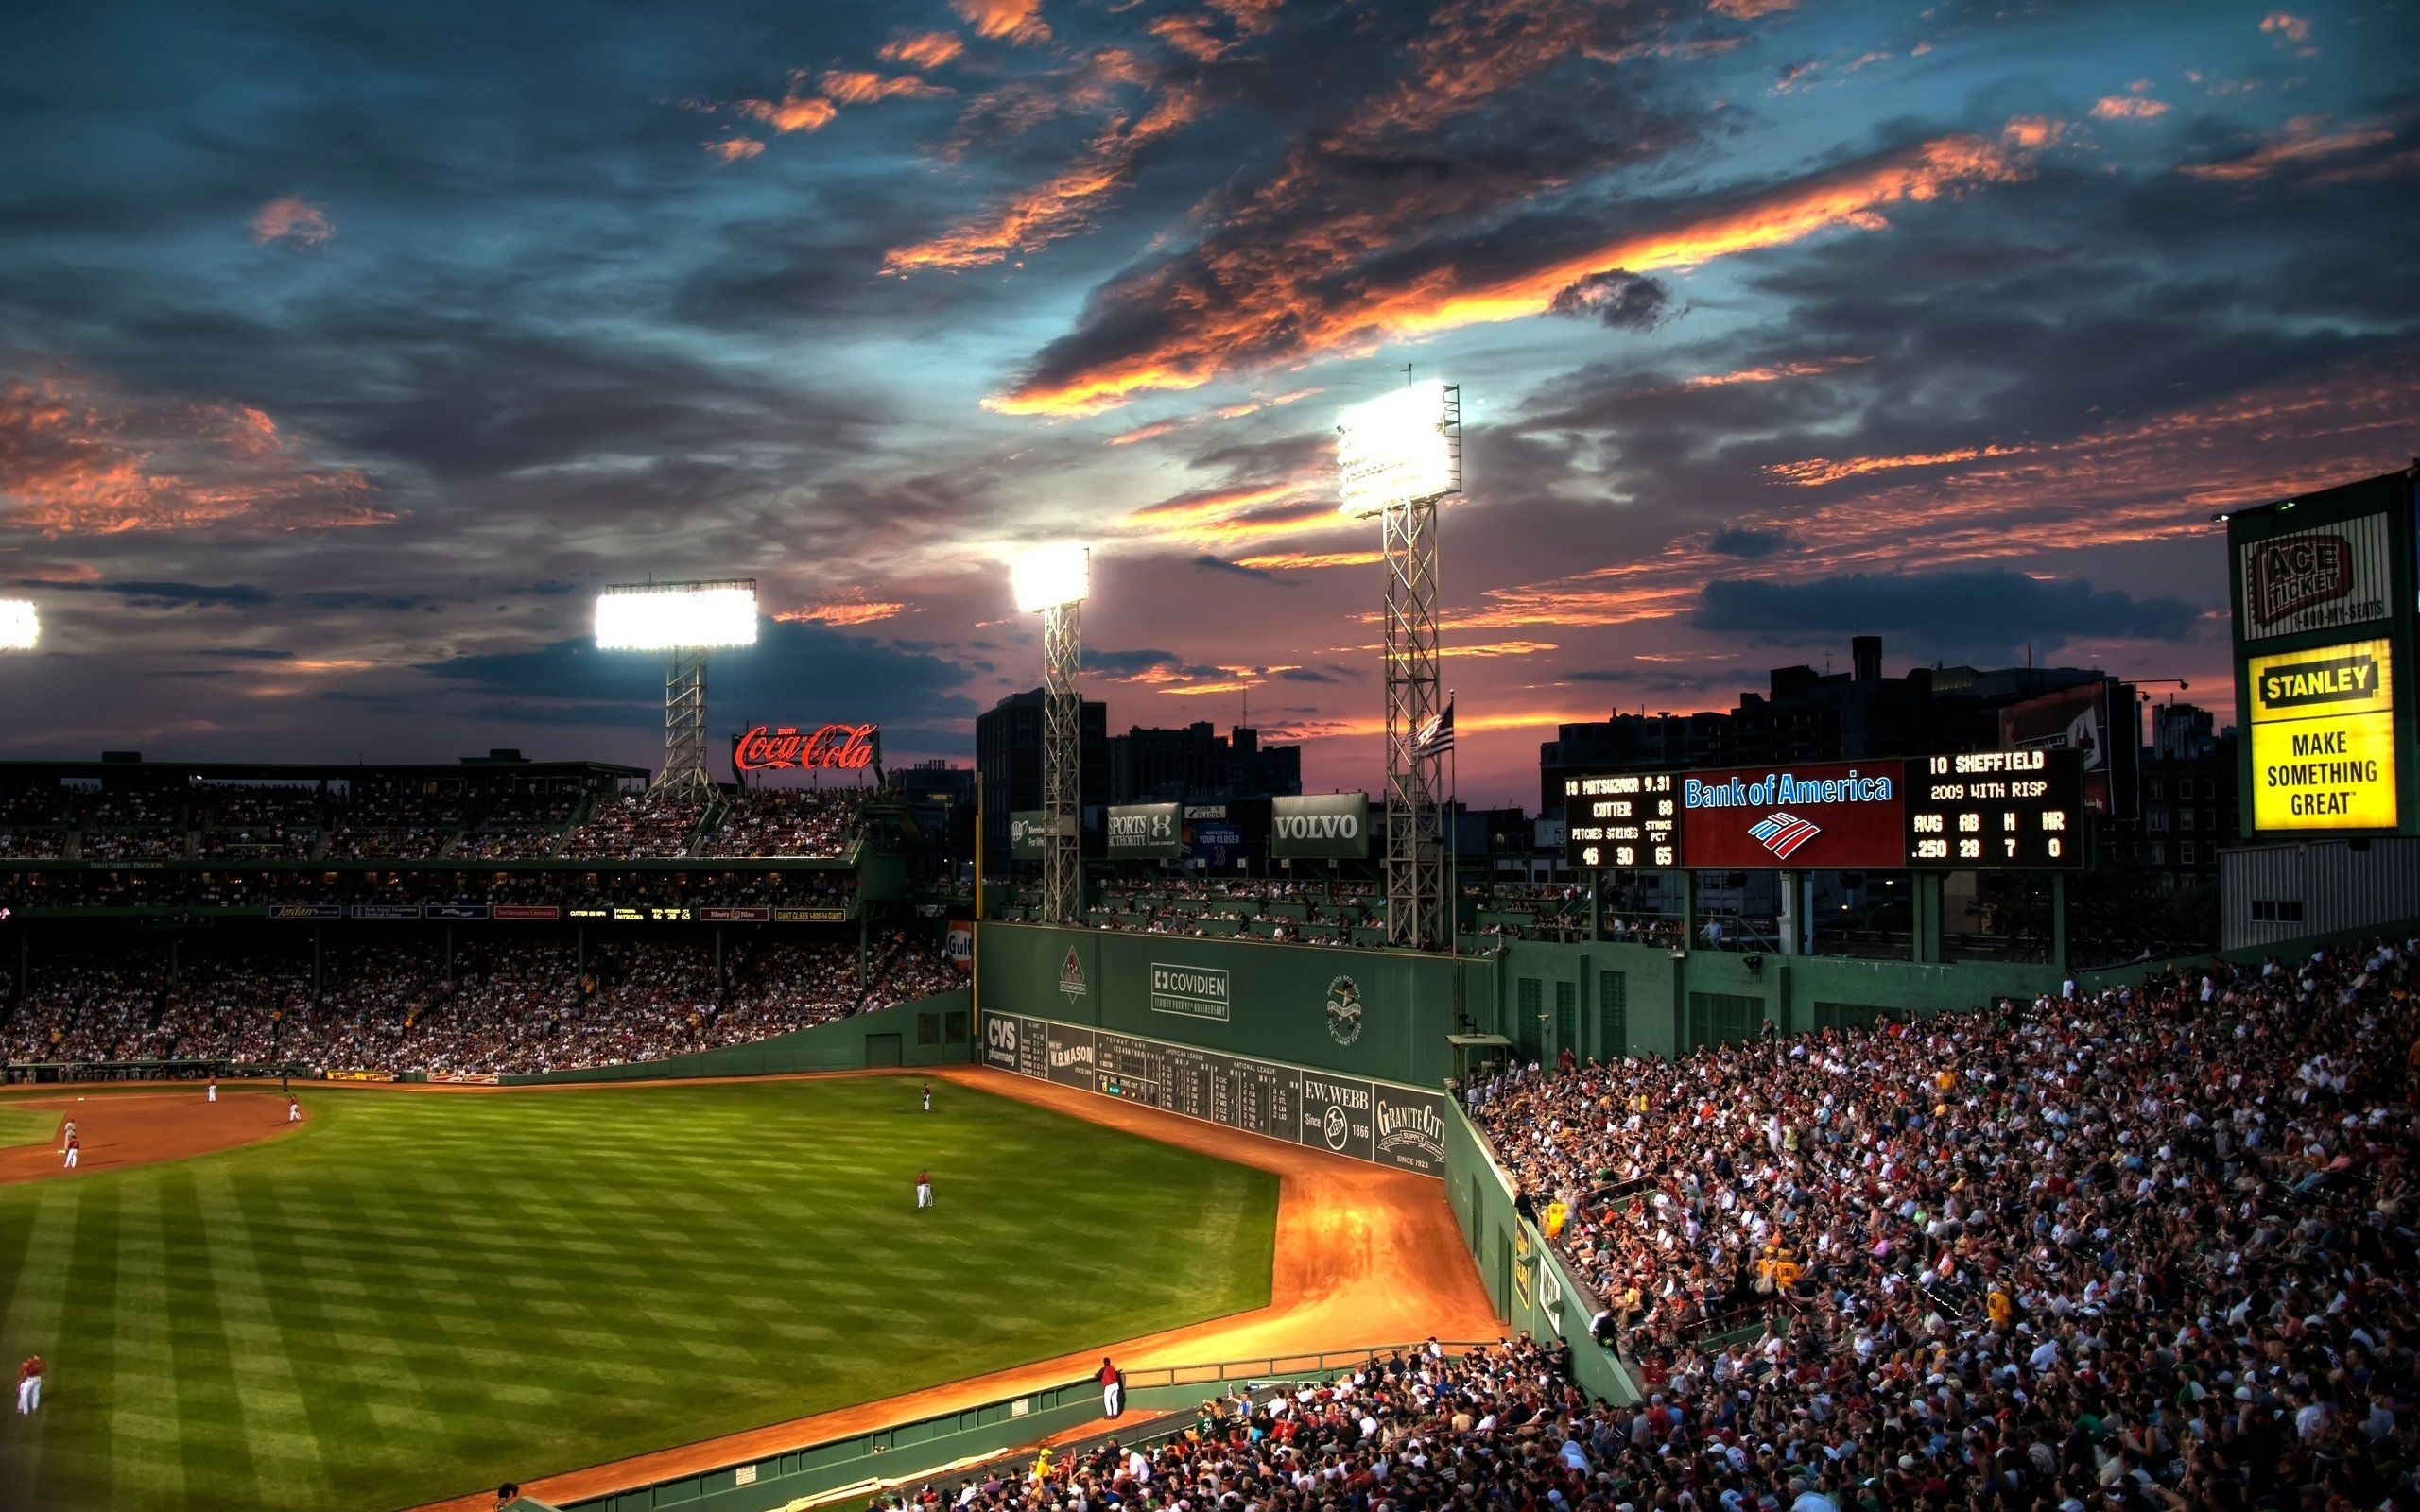 2560x1600 - Boston Red Sox Wallpaper Screensavers 31